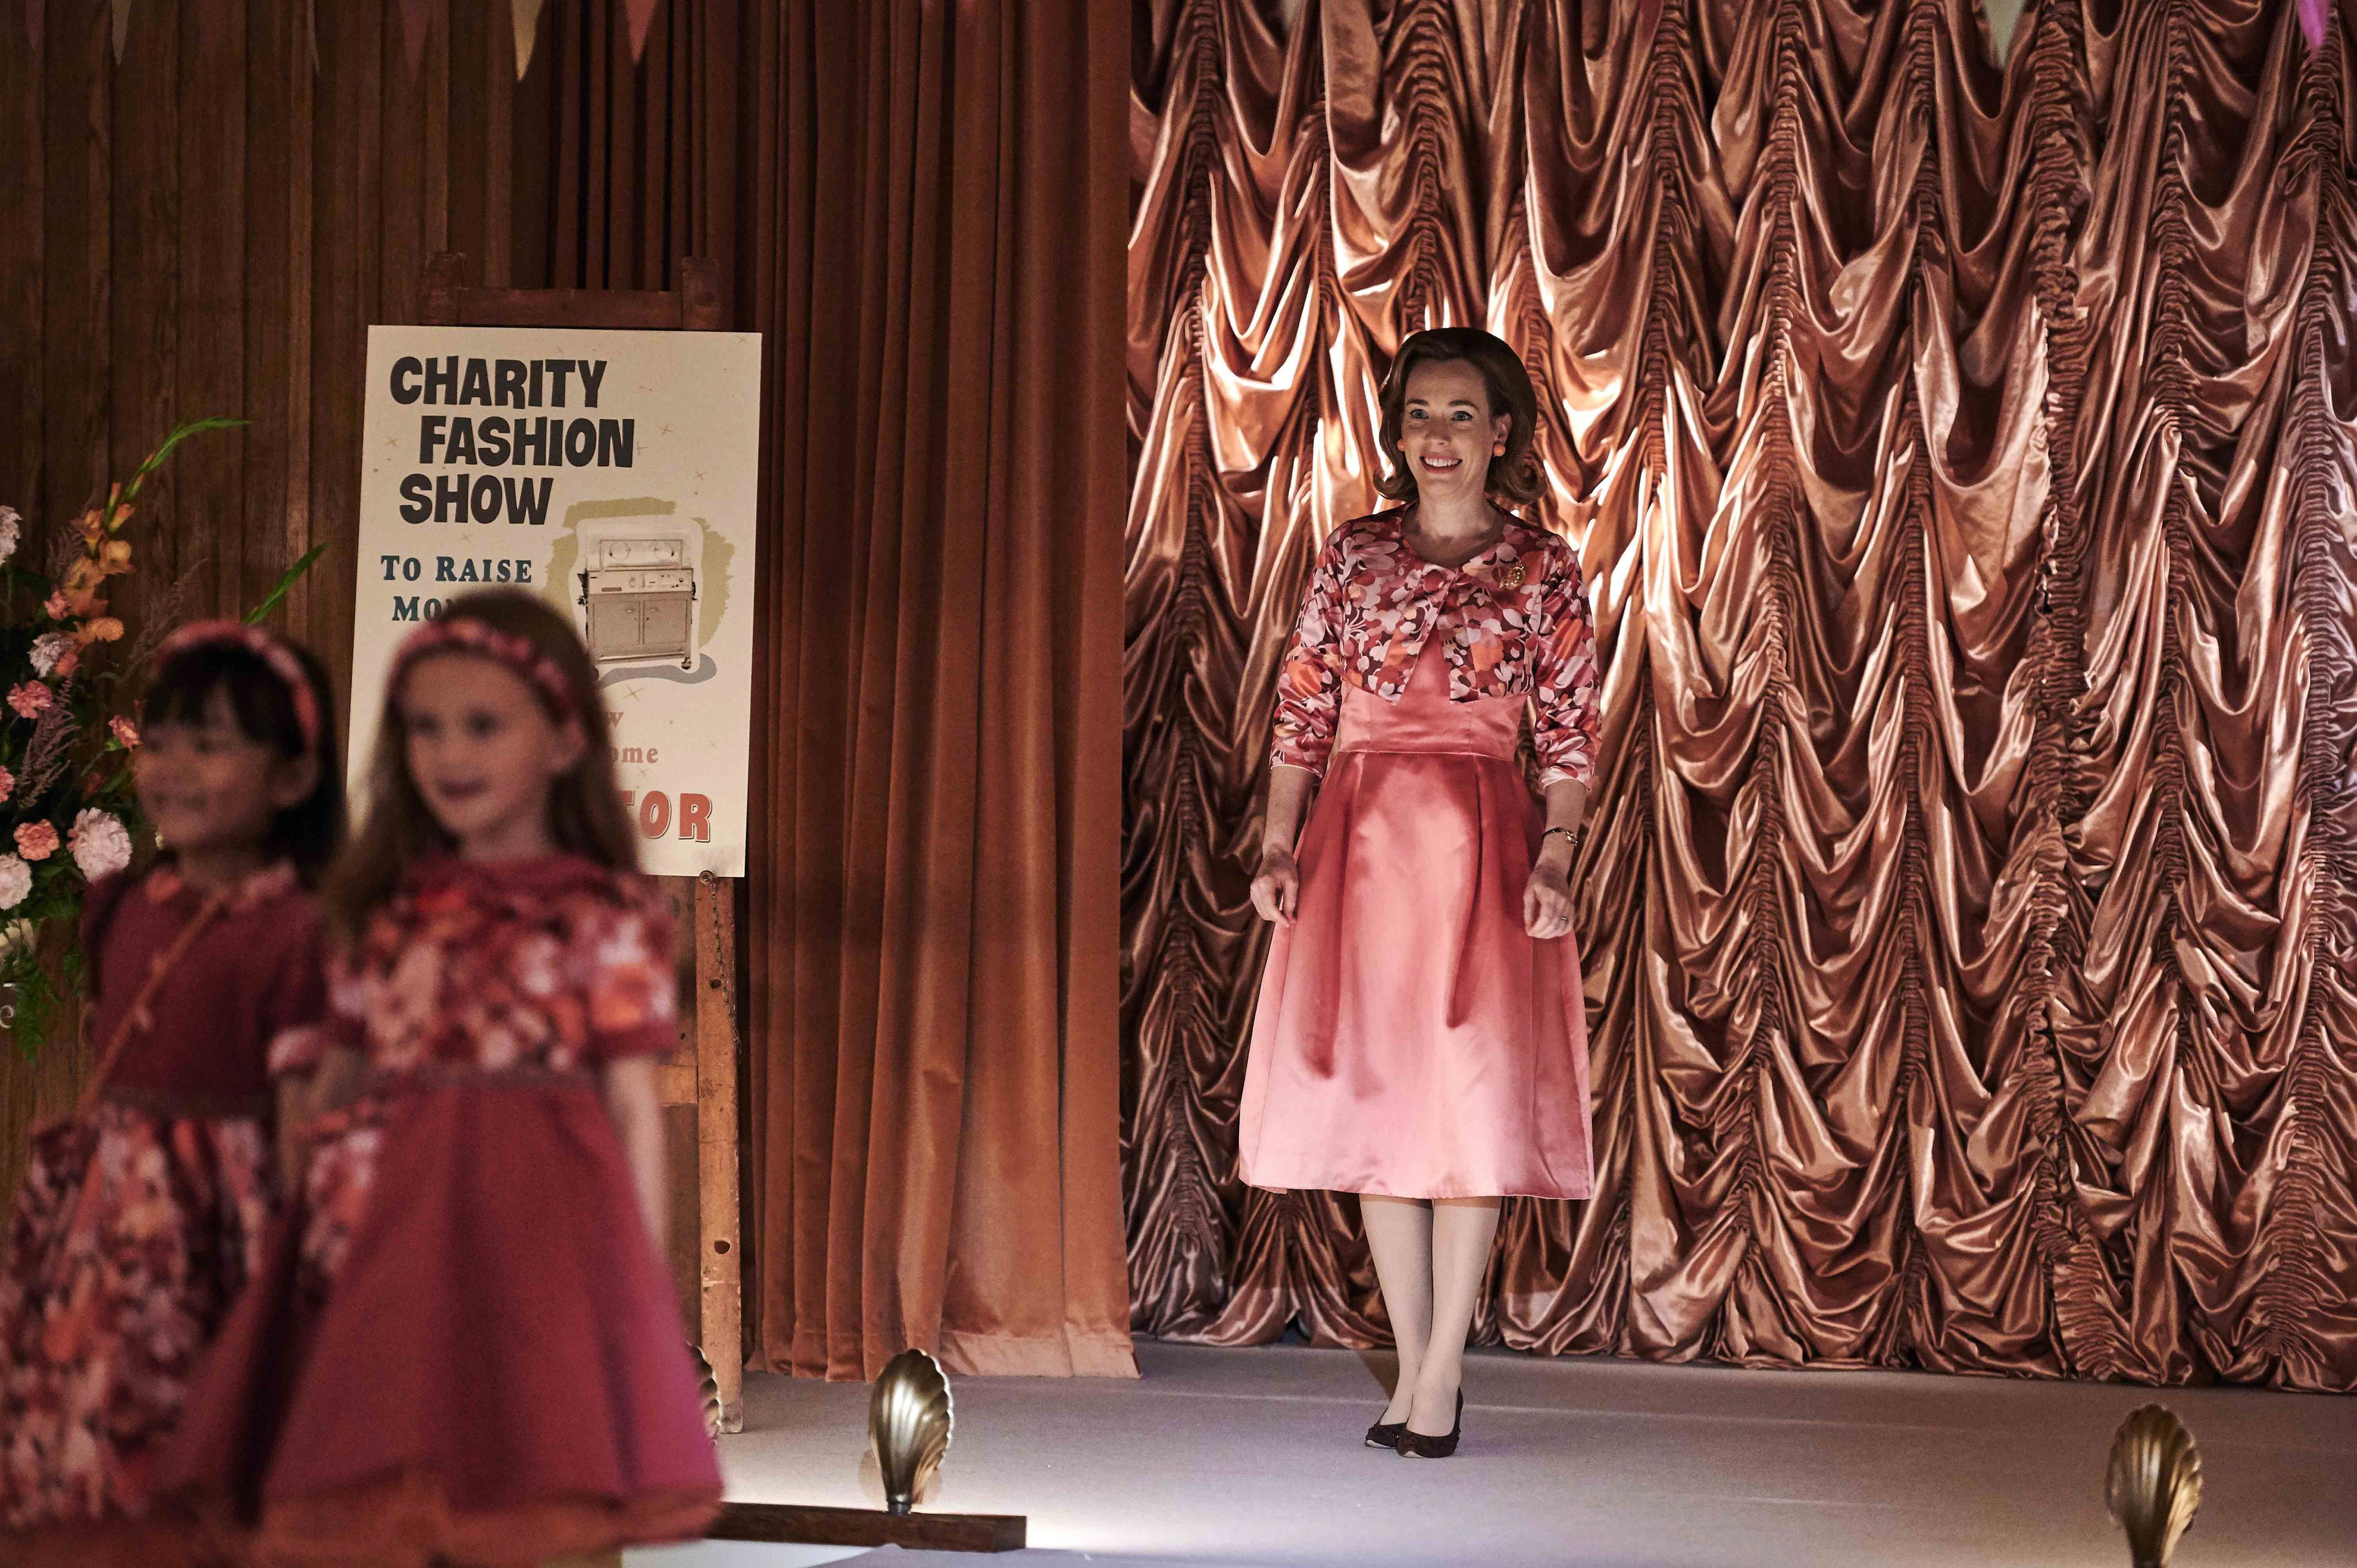 Shelagh, Trixie and Valerie strut their stuff on charity catwalk in Call The Midwife preview